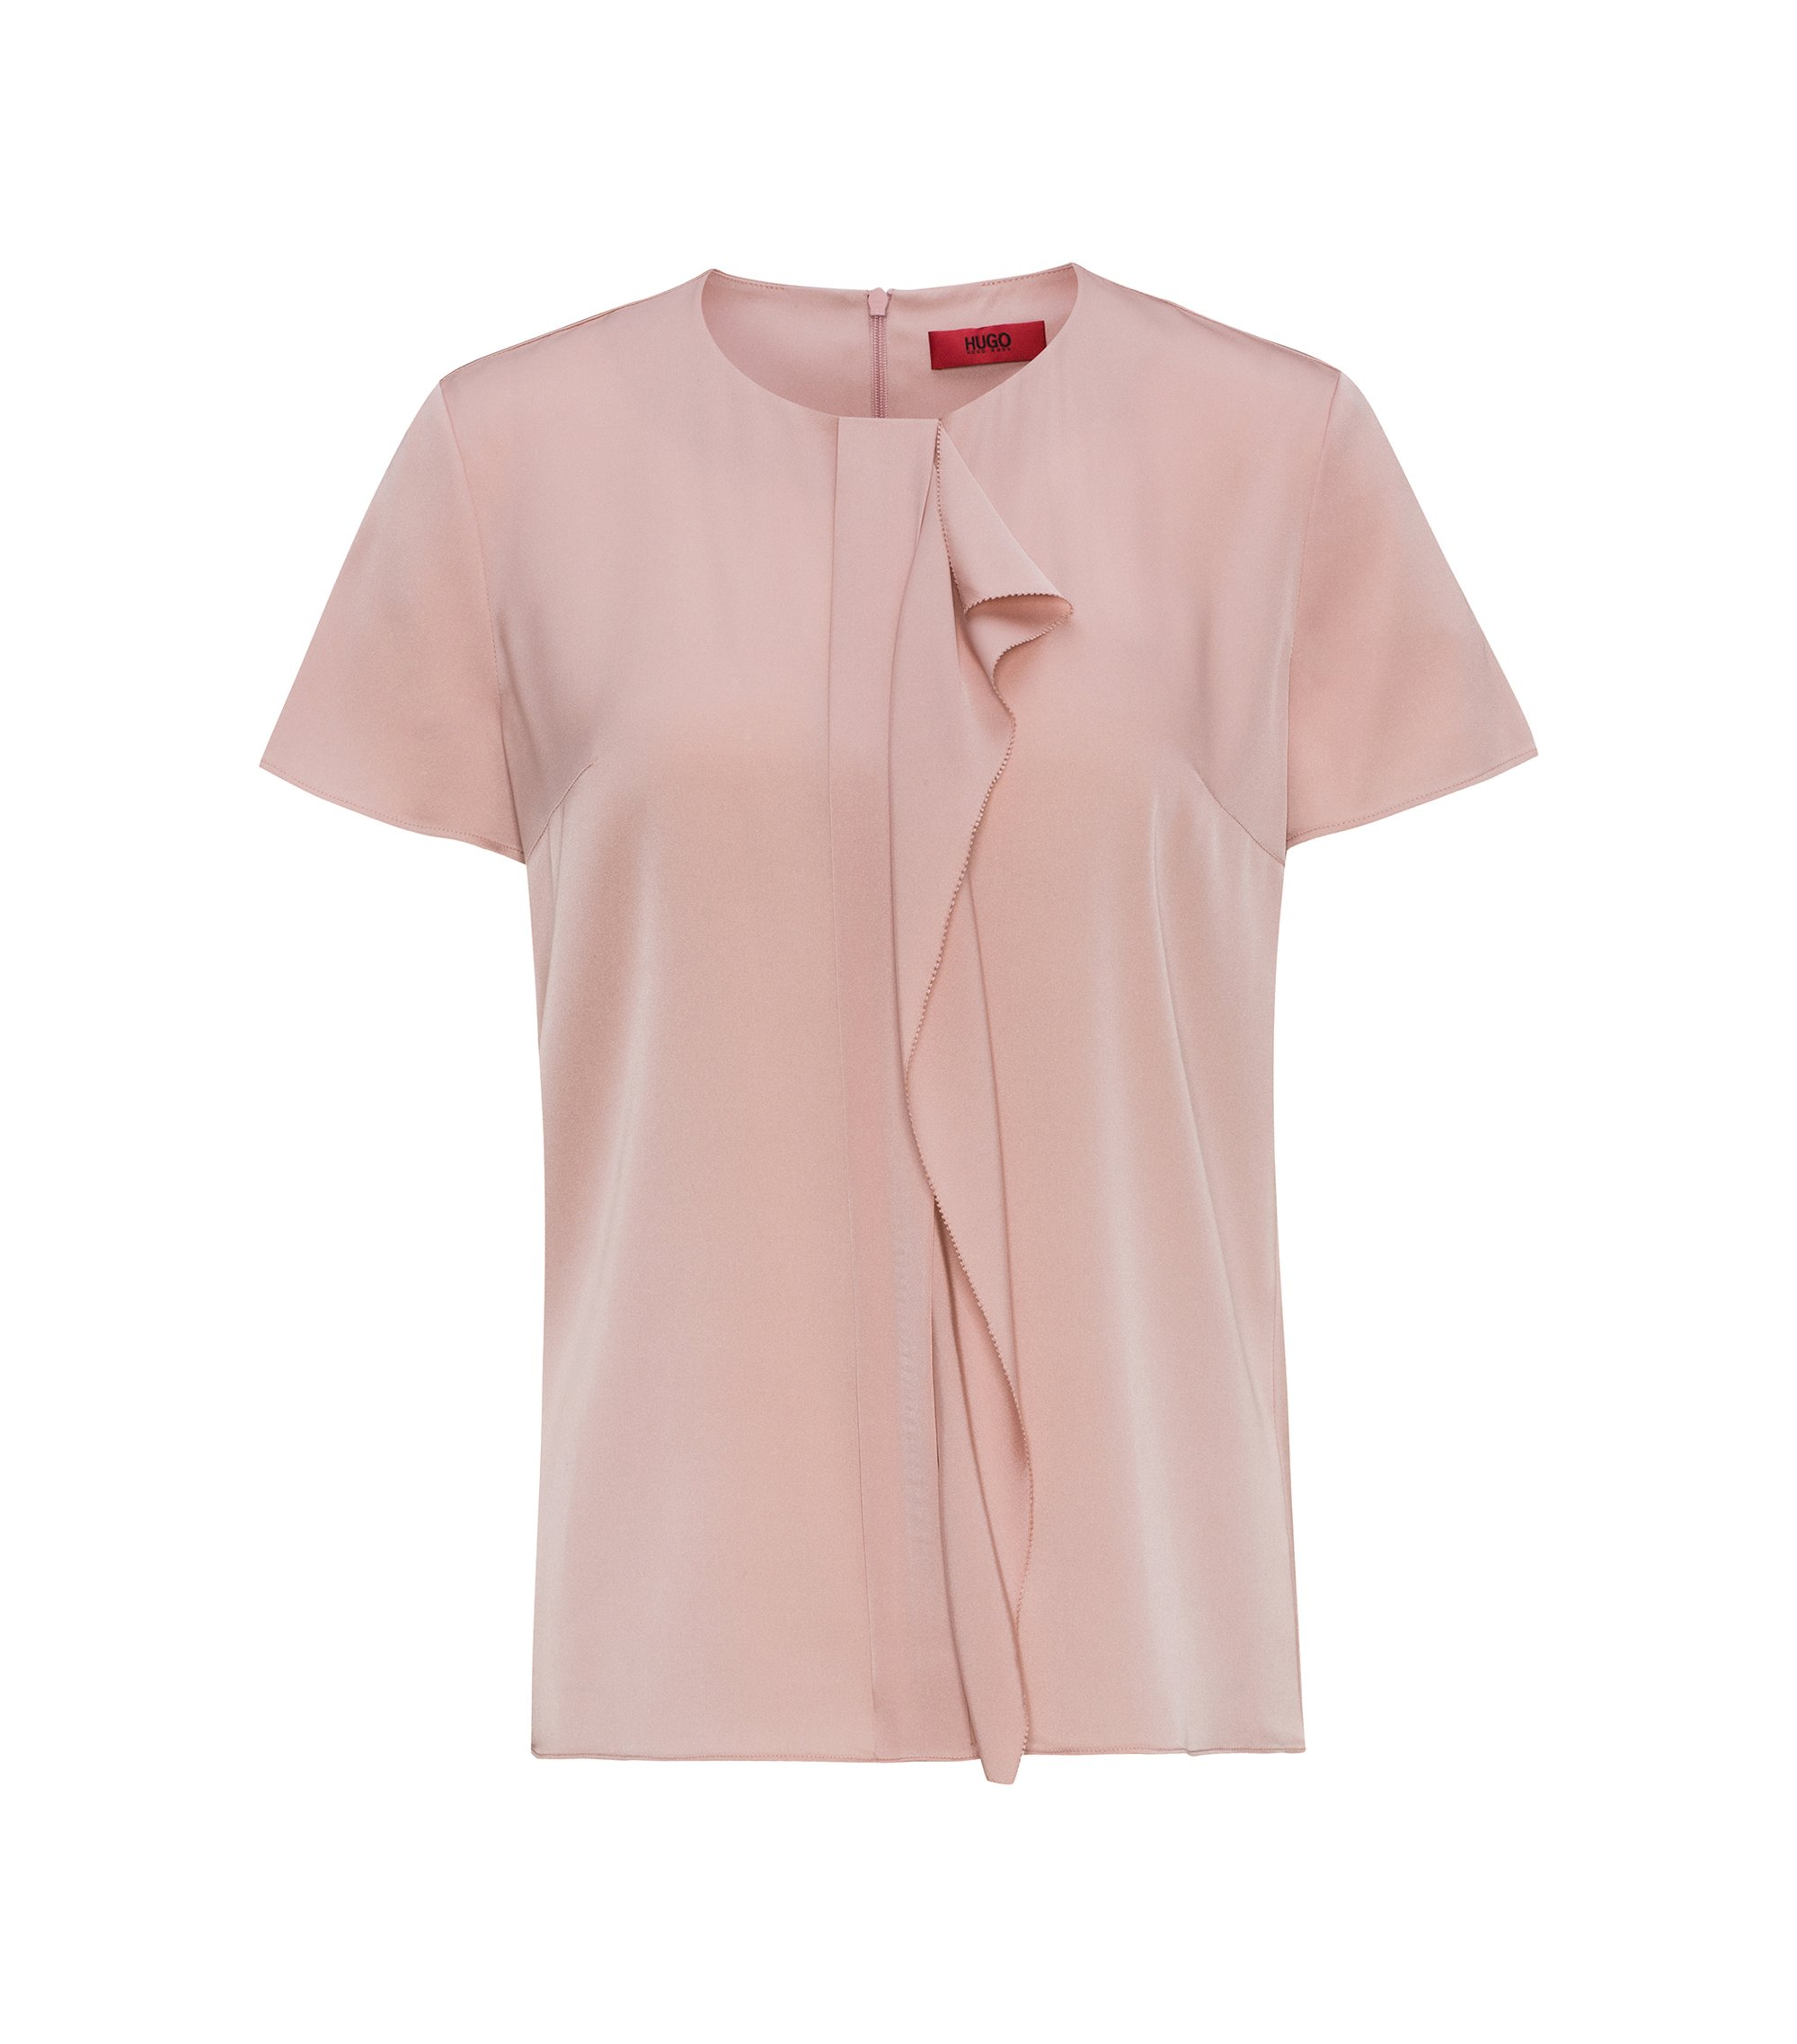 Cap-sleeved top in stretch silk, light pink